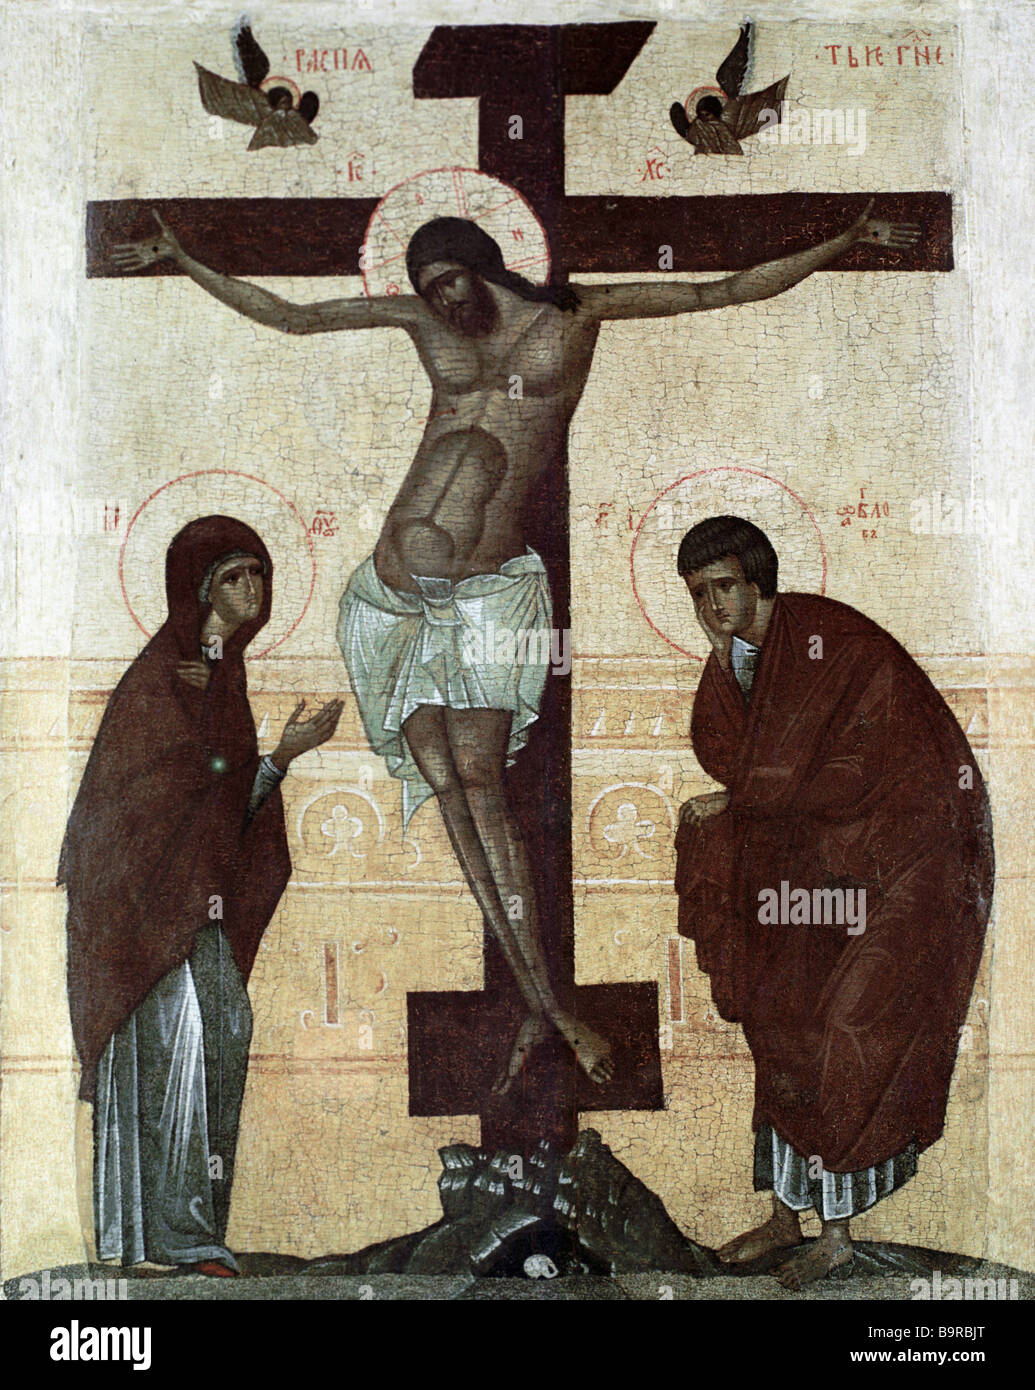 The Crucifixion 14th century icon - Stock Image